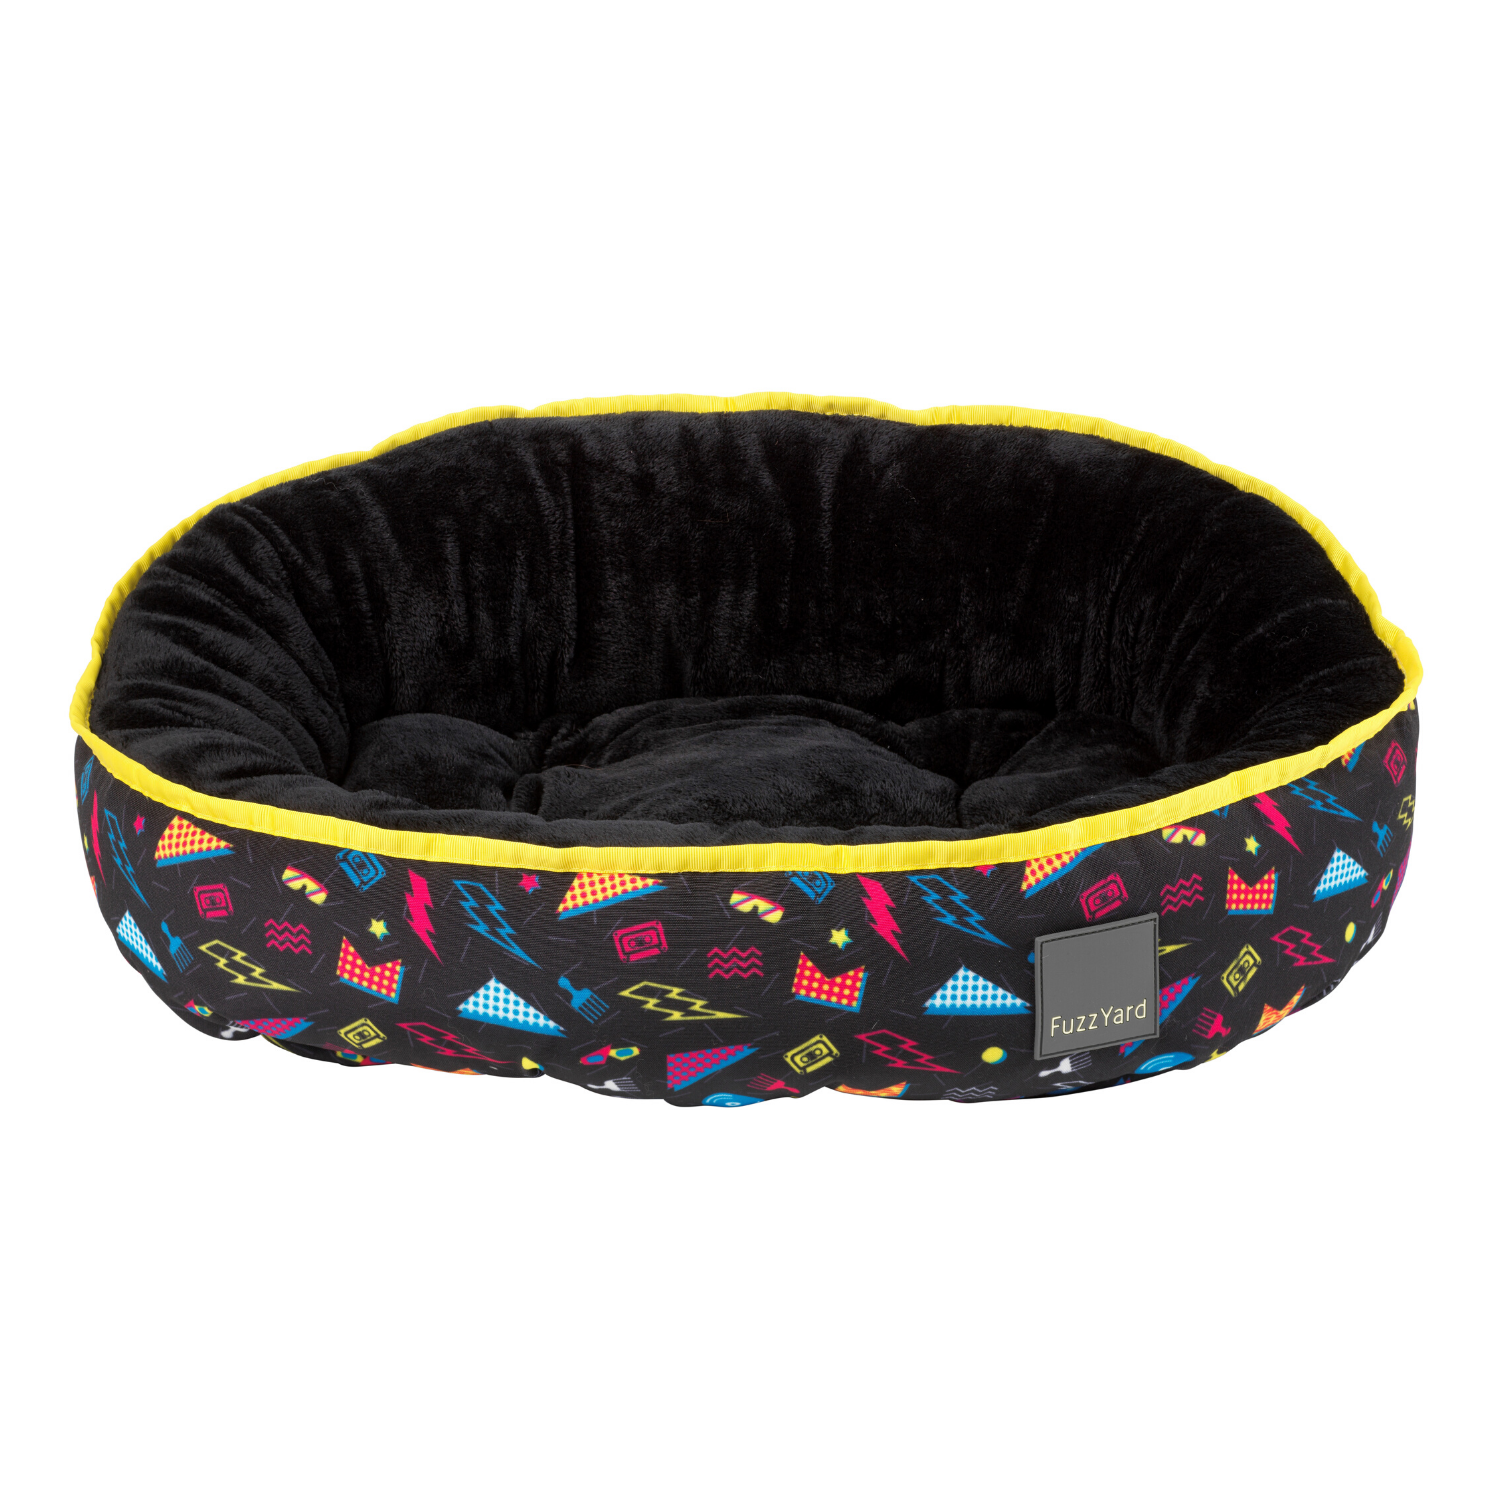 [LAUNCH PROMO] Fuzzyard Reversible Bed (Bel Air) - S / M / L